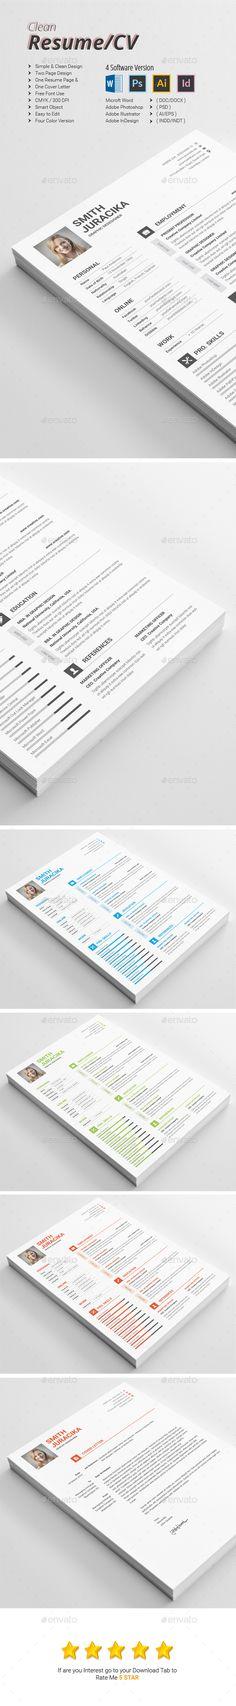 Flat and Clean Resume Fonts, Cv design and Resume cv - font on resume